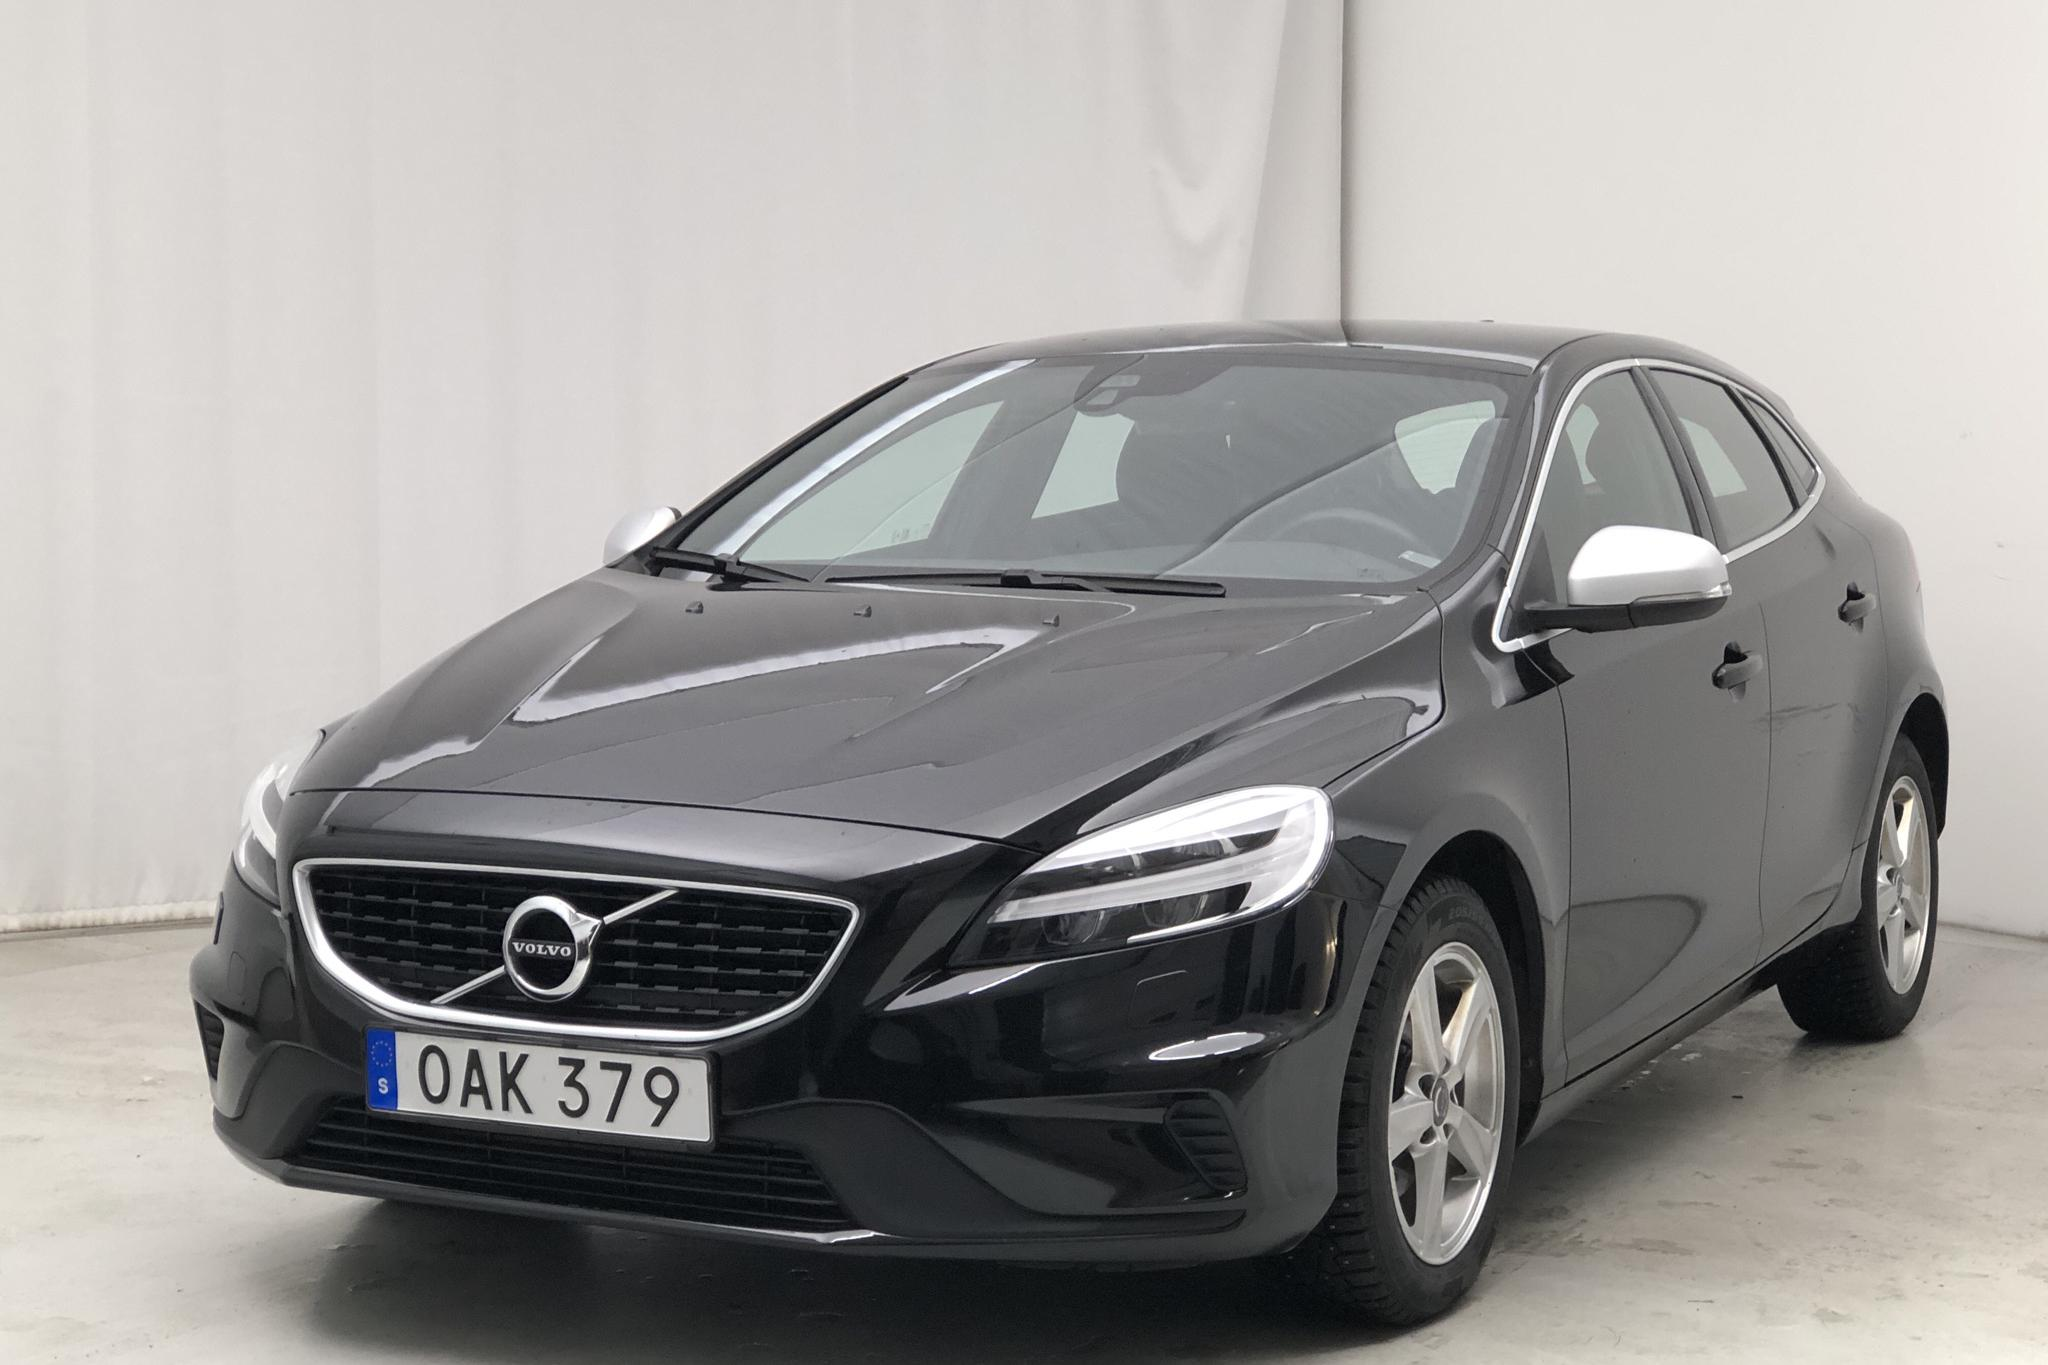 Volvo V40 D2 (120hk) - 38 570 km - Manual - black - 2017